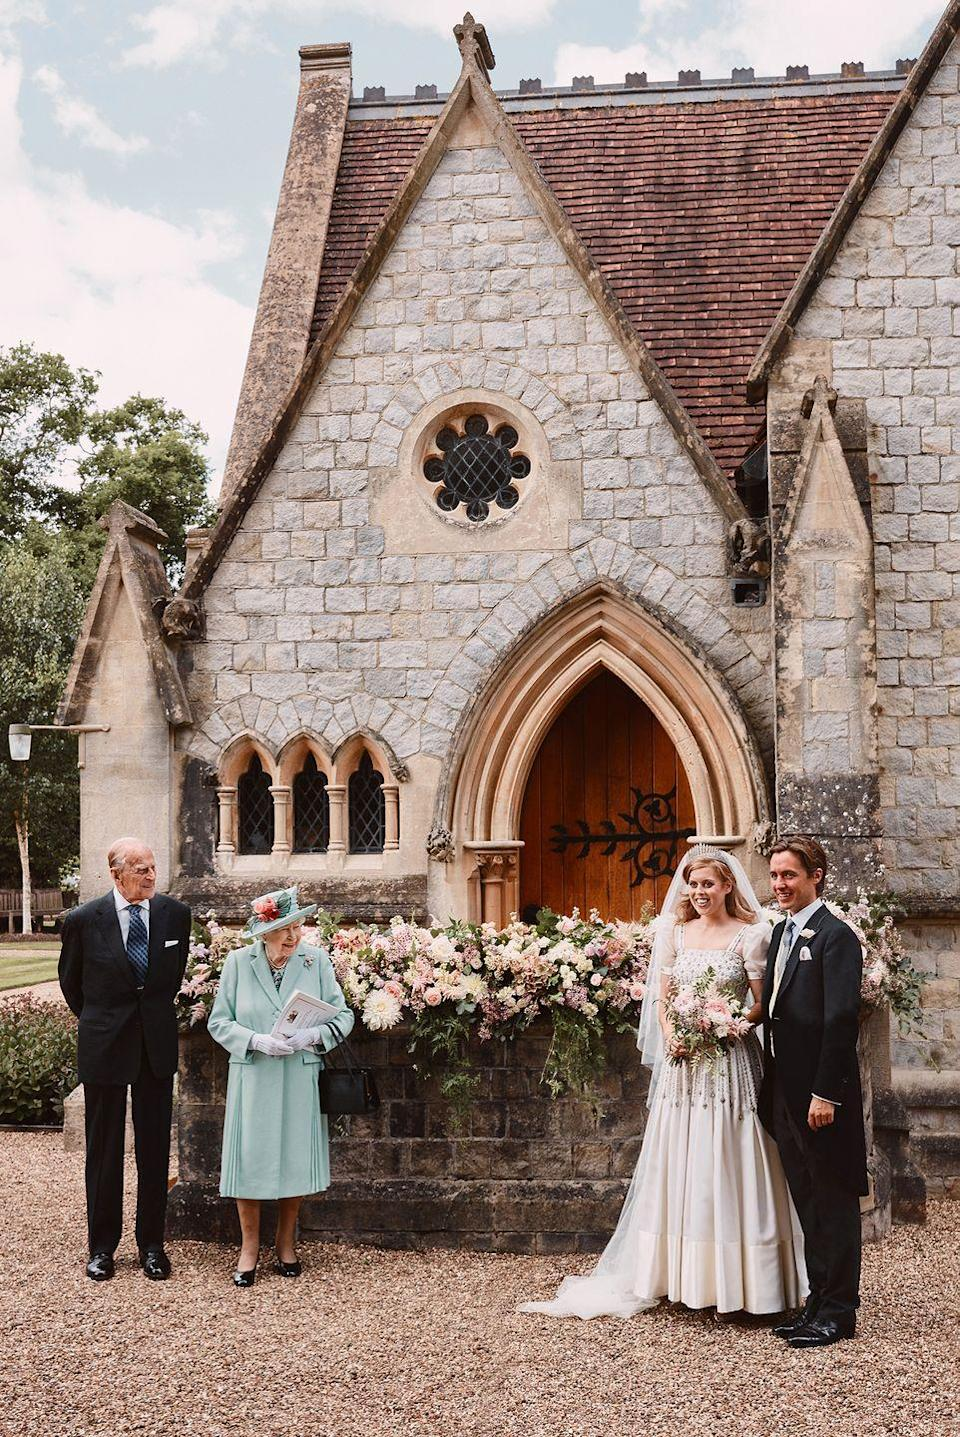 """<p>For <a href=""""https://www.townandcountrymag.com/society/tradition/a29242832/princess-beatrice-edoardo-mapelli-mozzi-wedding/"""" rel=""""nofollow noopener"""" target=""""_blank"""" data-ylk=""""slk:their surprise nuptials"""" class=""""link rapid-noclick-resp"""">their surprise nuptials</a>, Princess Beatrice and Edoardo Mapelli Mozzi were joined by the bride's grandparents, Queen Elizabeth and the Duke of Edinburgh, Mapelli Mozzi's parents, and their siblings. Mapelli Mozzi's son Wolfie served as the best man and page boy.</p>"""